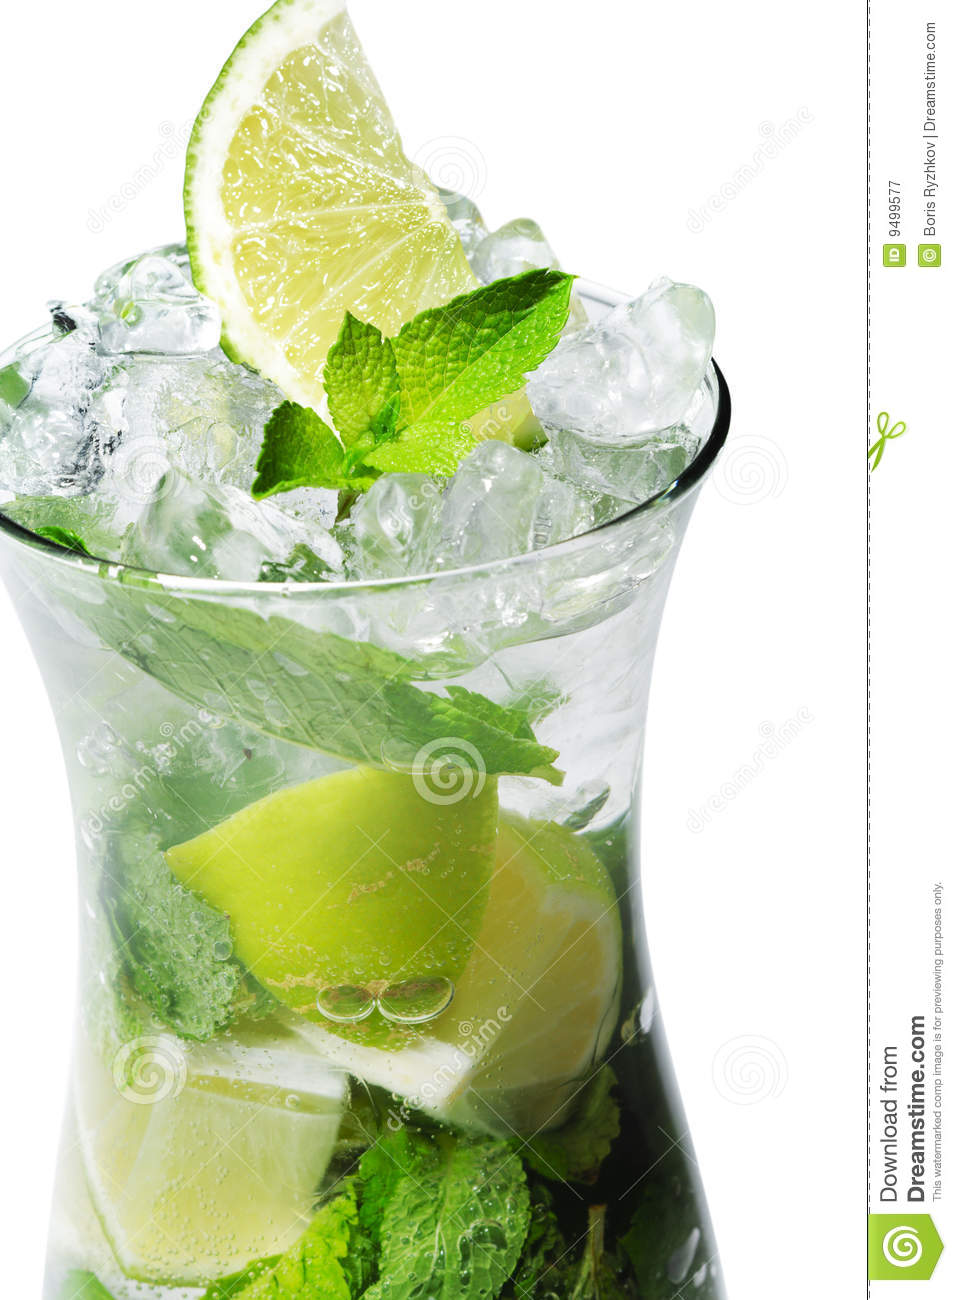 Cocktail - Mojito Royalty Free Stock Photography - Image: 9499577